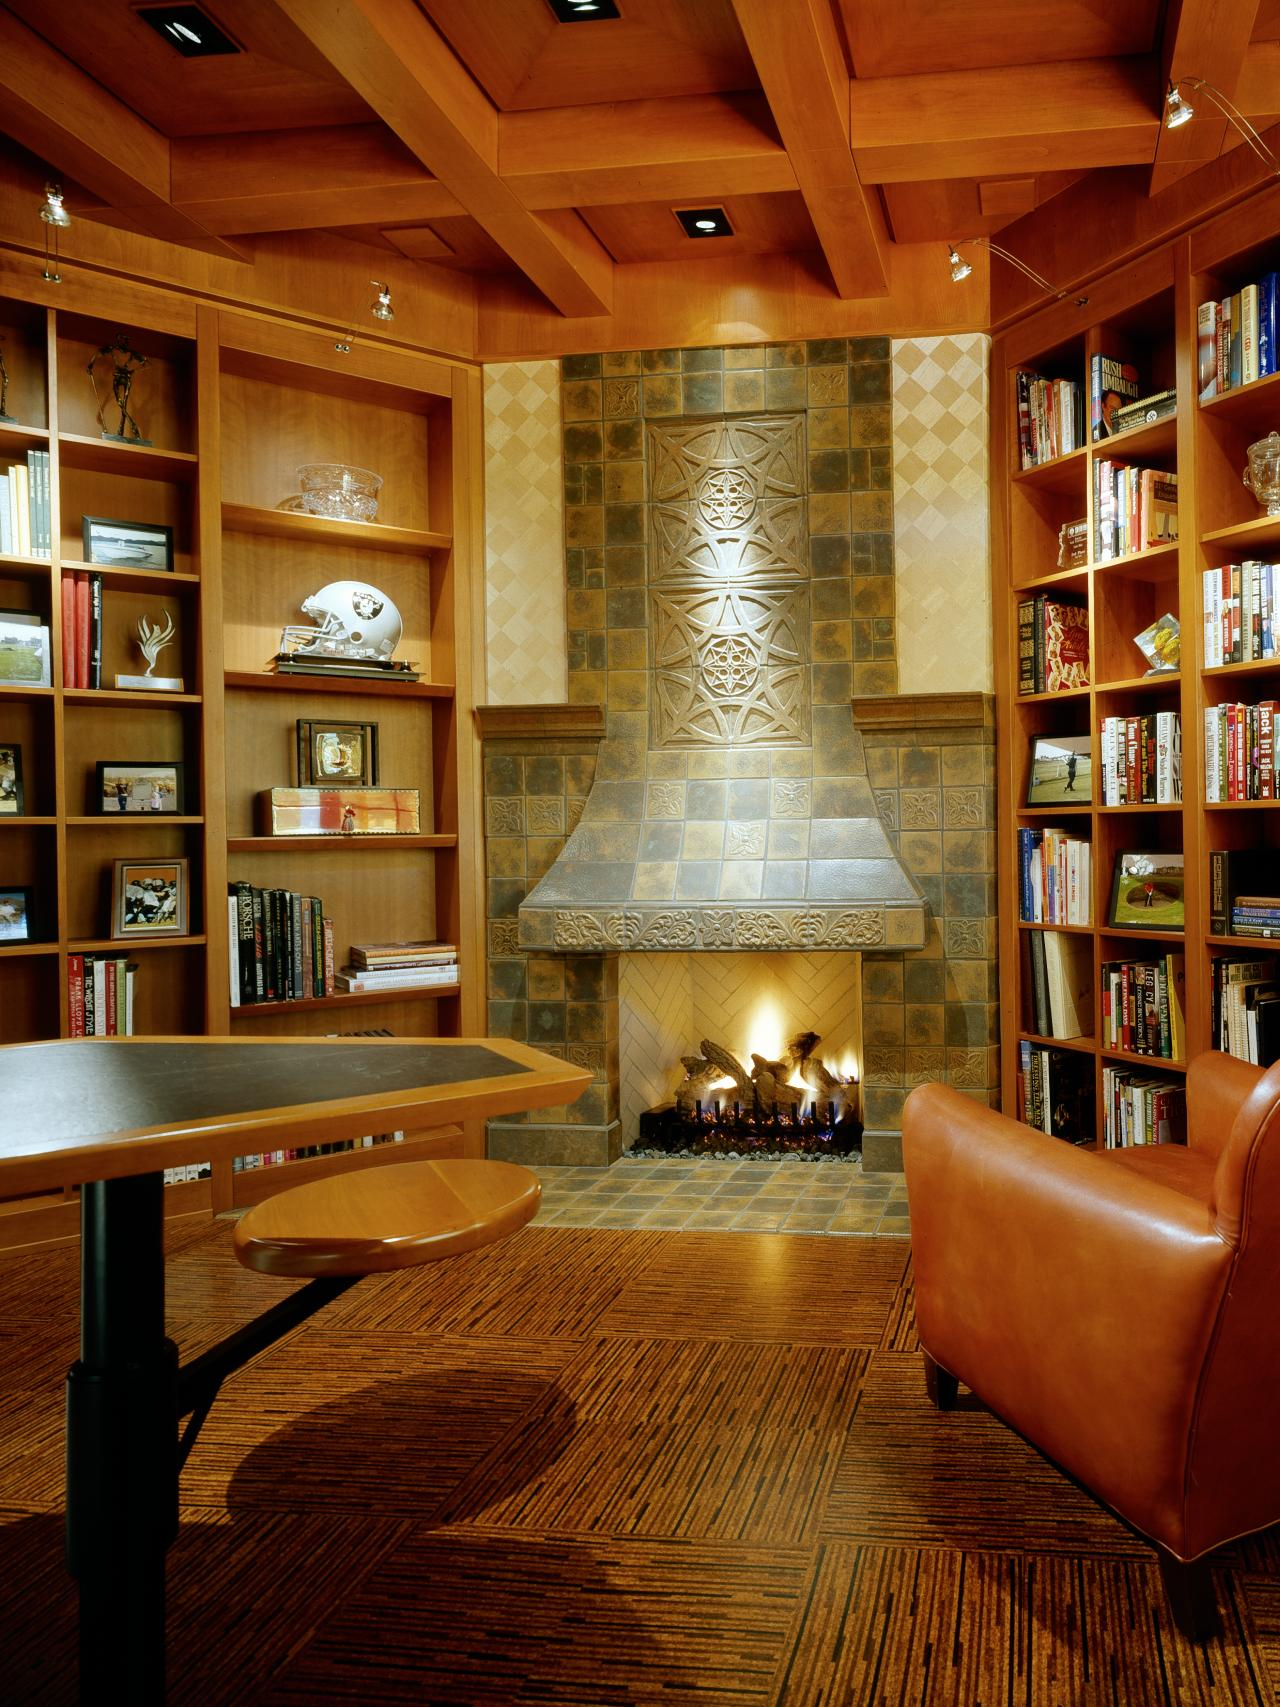 12 Dreamy Home Libraries | Decorating and Design Ideas for Interior